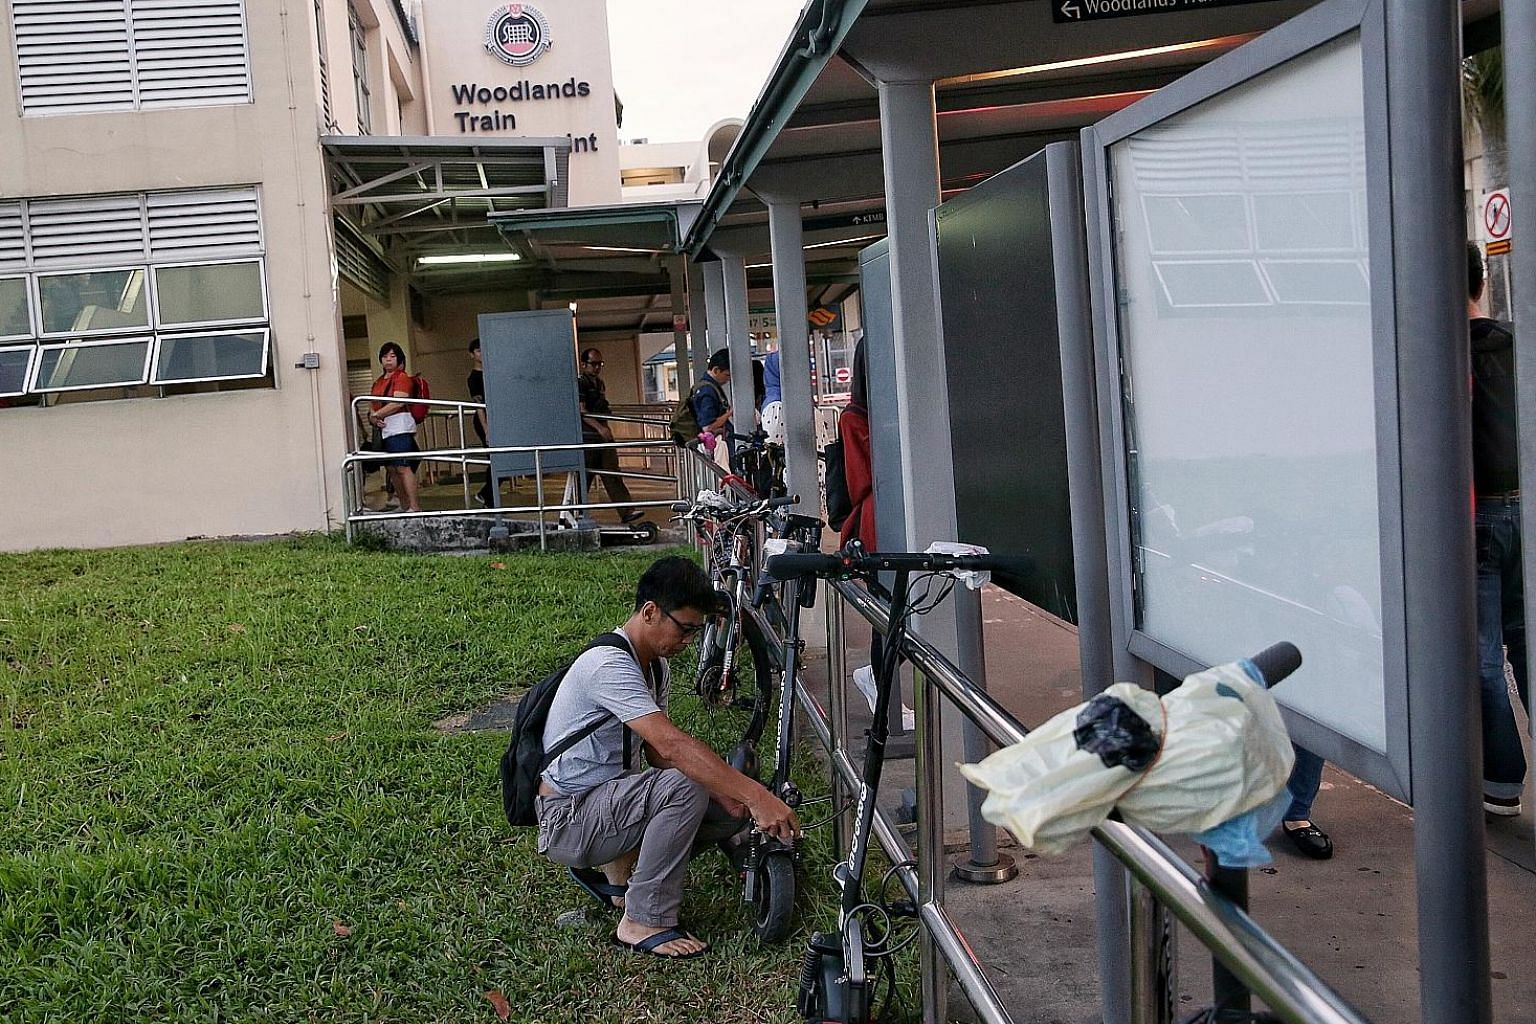 Some Malaysians who commute to work in Singapore are still riding their e-scooters into the Republic (above), but have been parking them near the Woodlands Checkpoint since the devices are banned from footpaths in Singapore. A number of workers lock